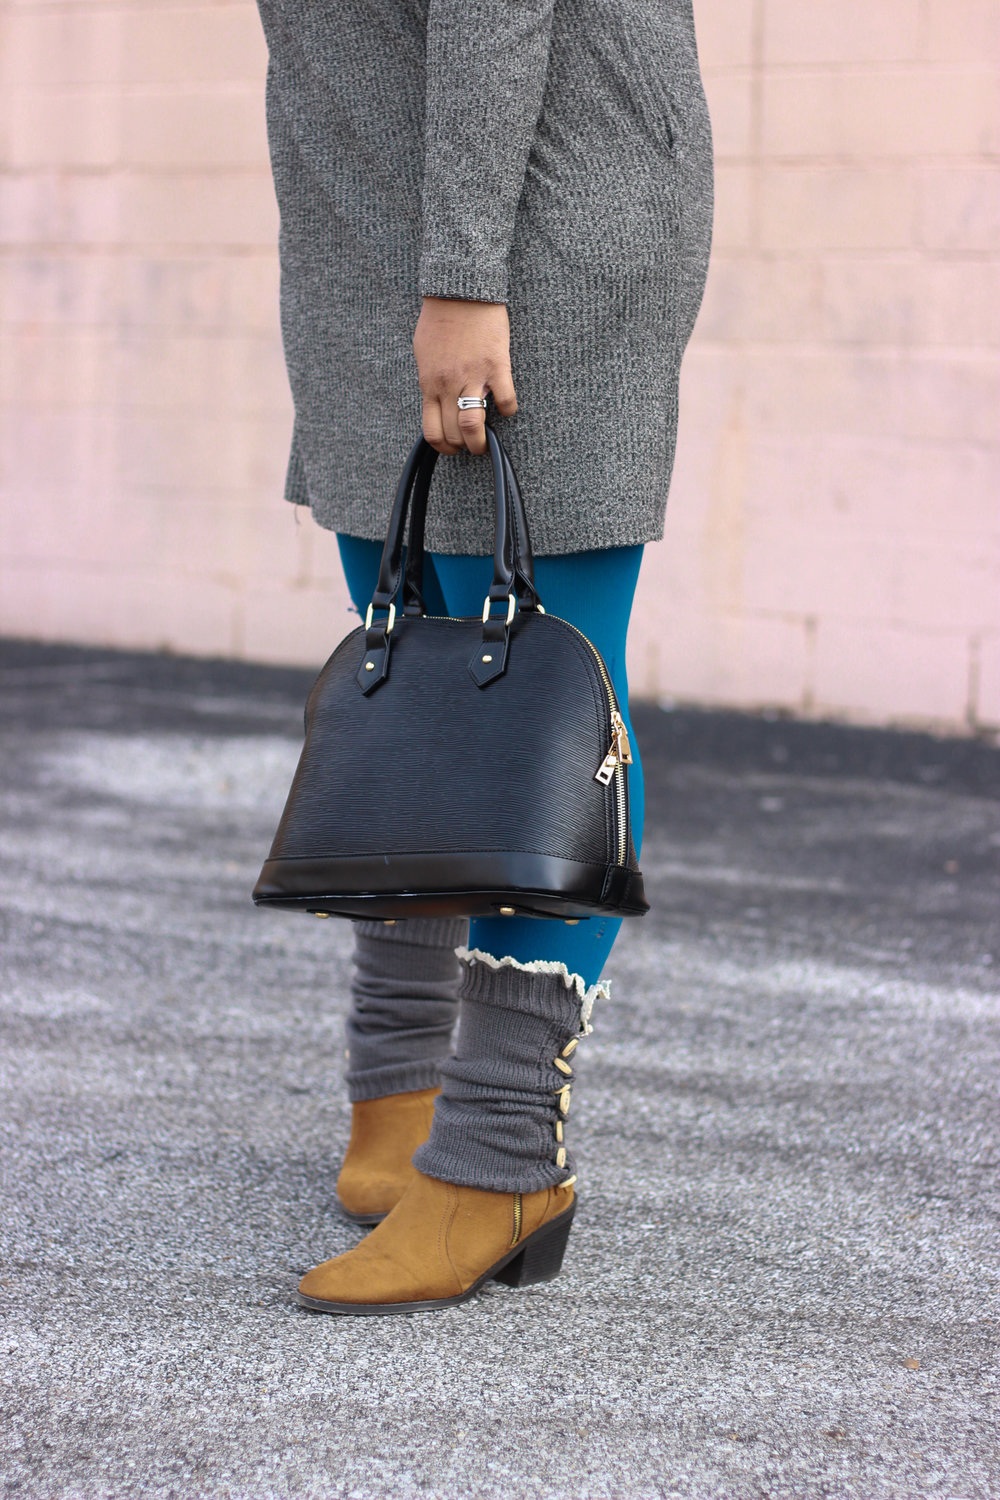 Pictured: Black Handbag, Long Gray Leg Warmers, Taupe Fringe Booties